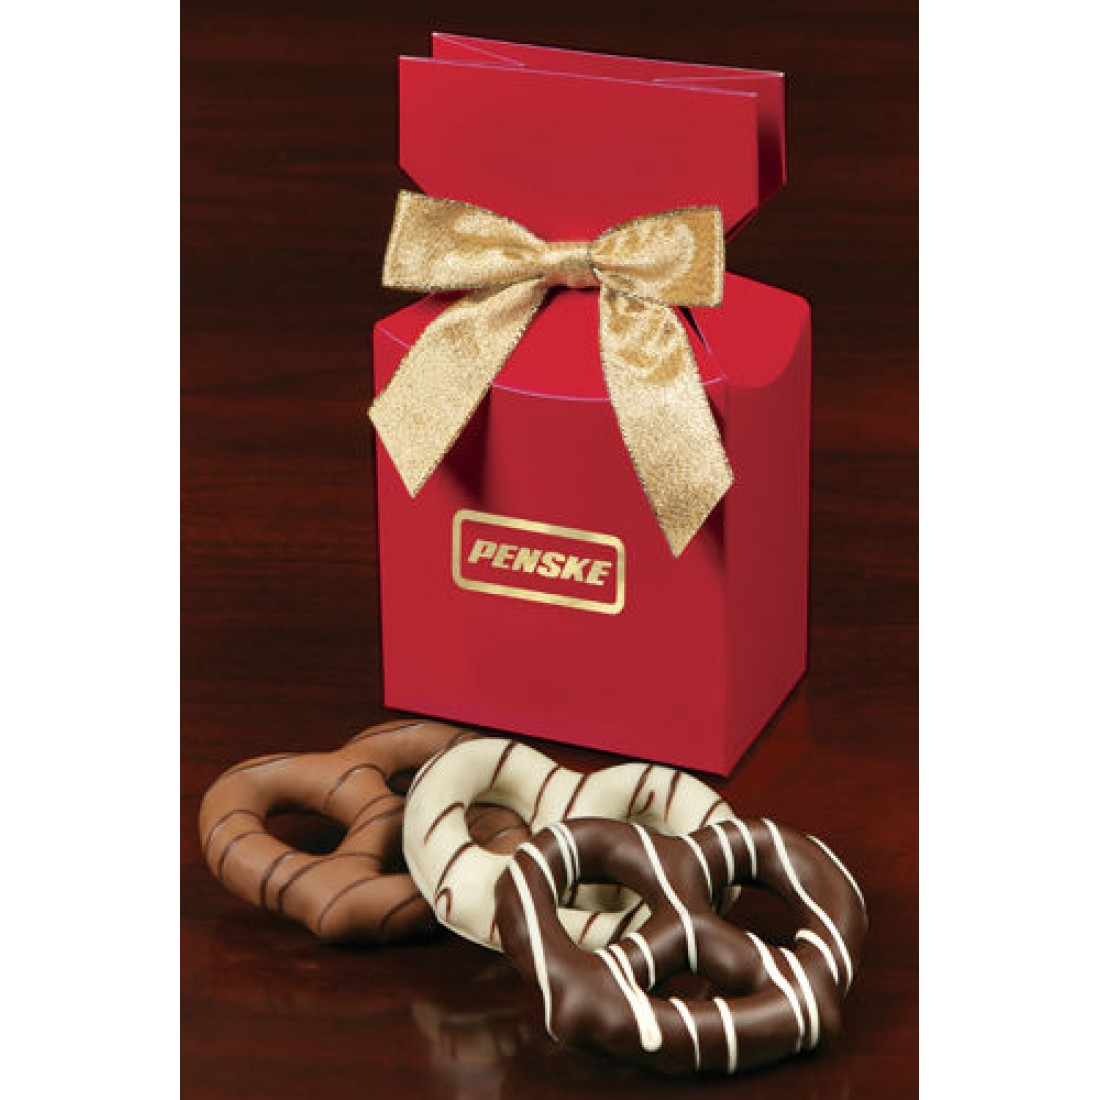 Red Company Branded Food Gift Box with Chocolate Covered Pretzels